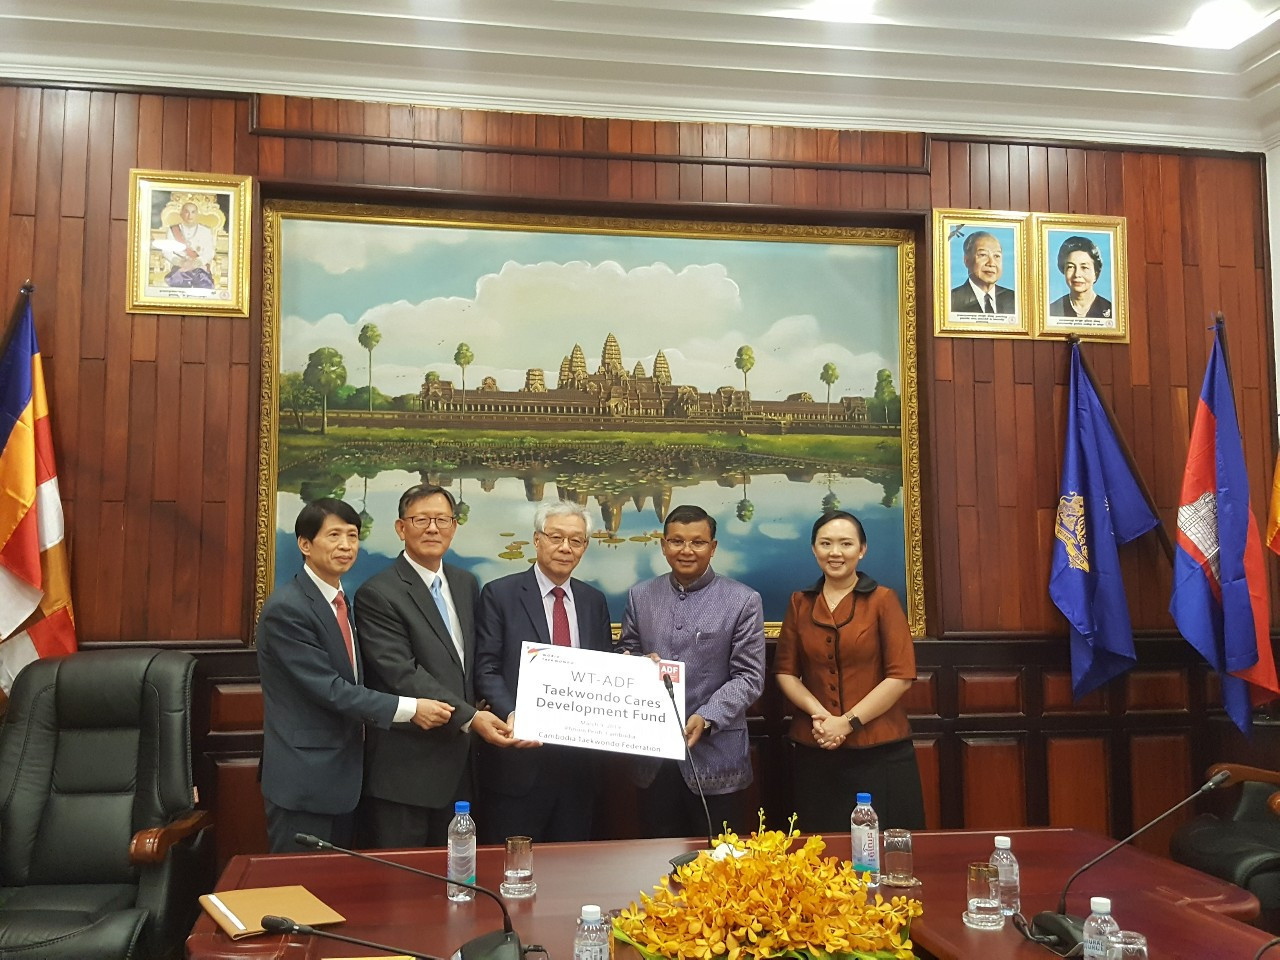 World Taekwondo and the Asia Development Foundation have delivered a $24,000 taekwondo development fund and university student scholarships to Hang Chuon Naron, Cambodia's Minister for Education, Youth and Sport ©World Taekwondo